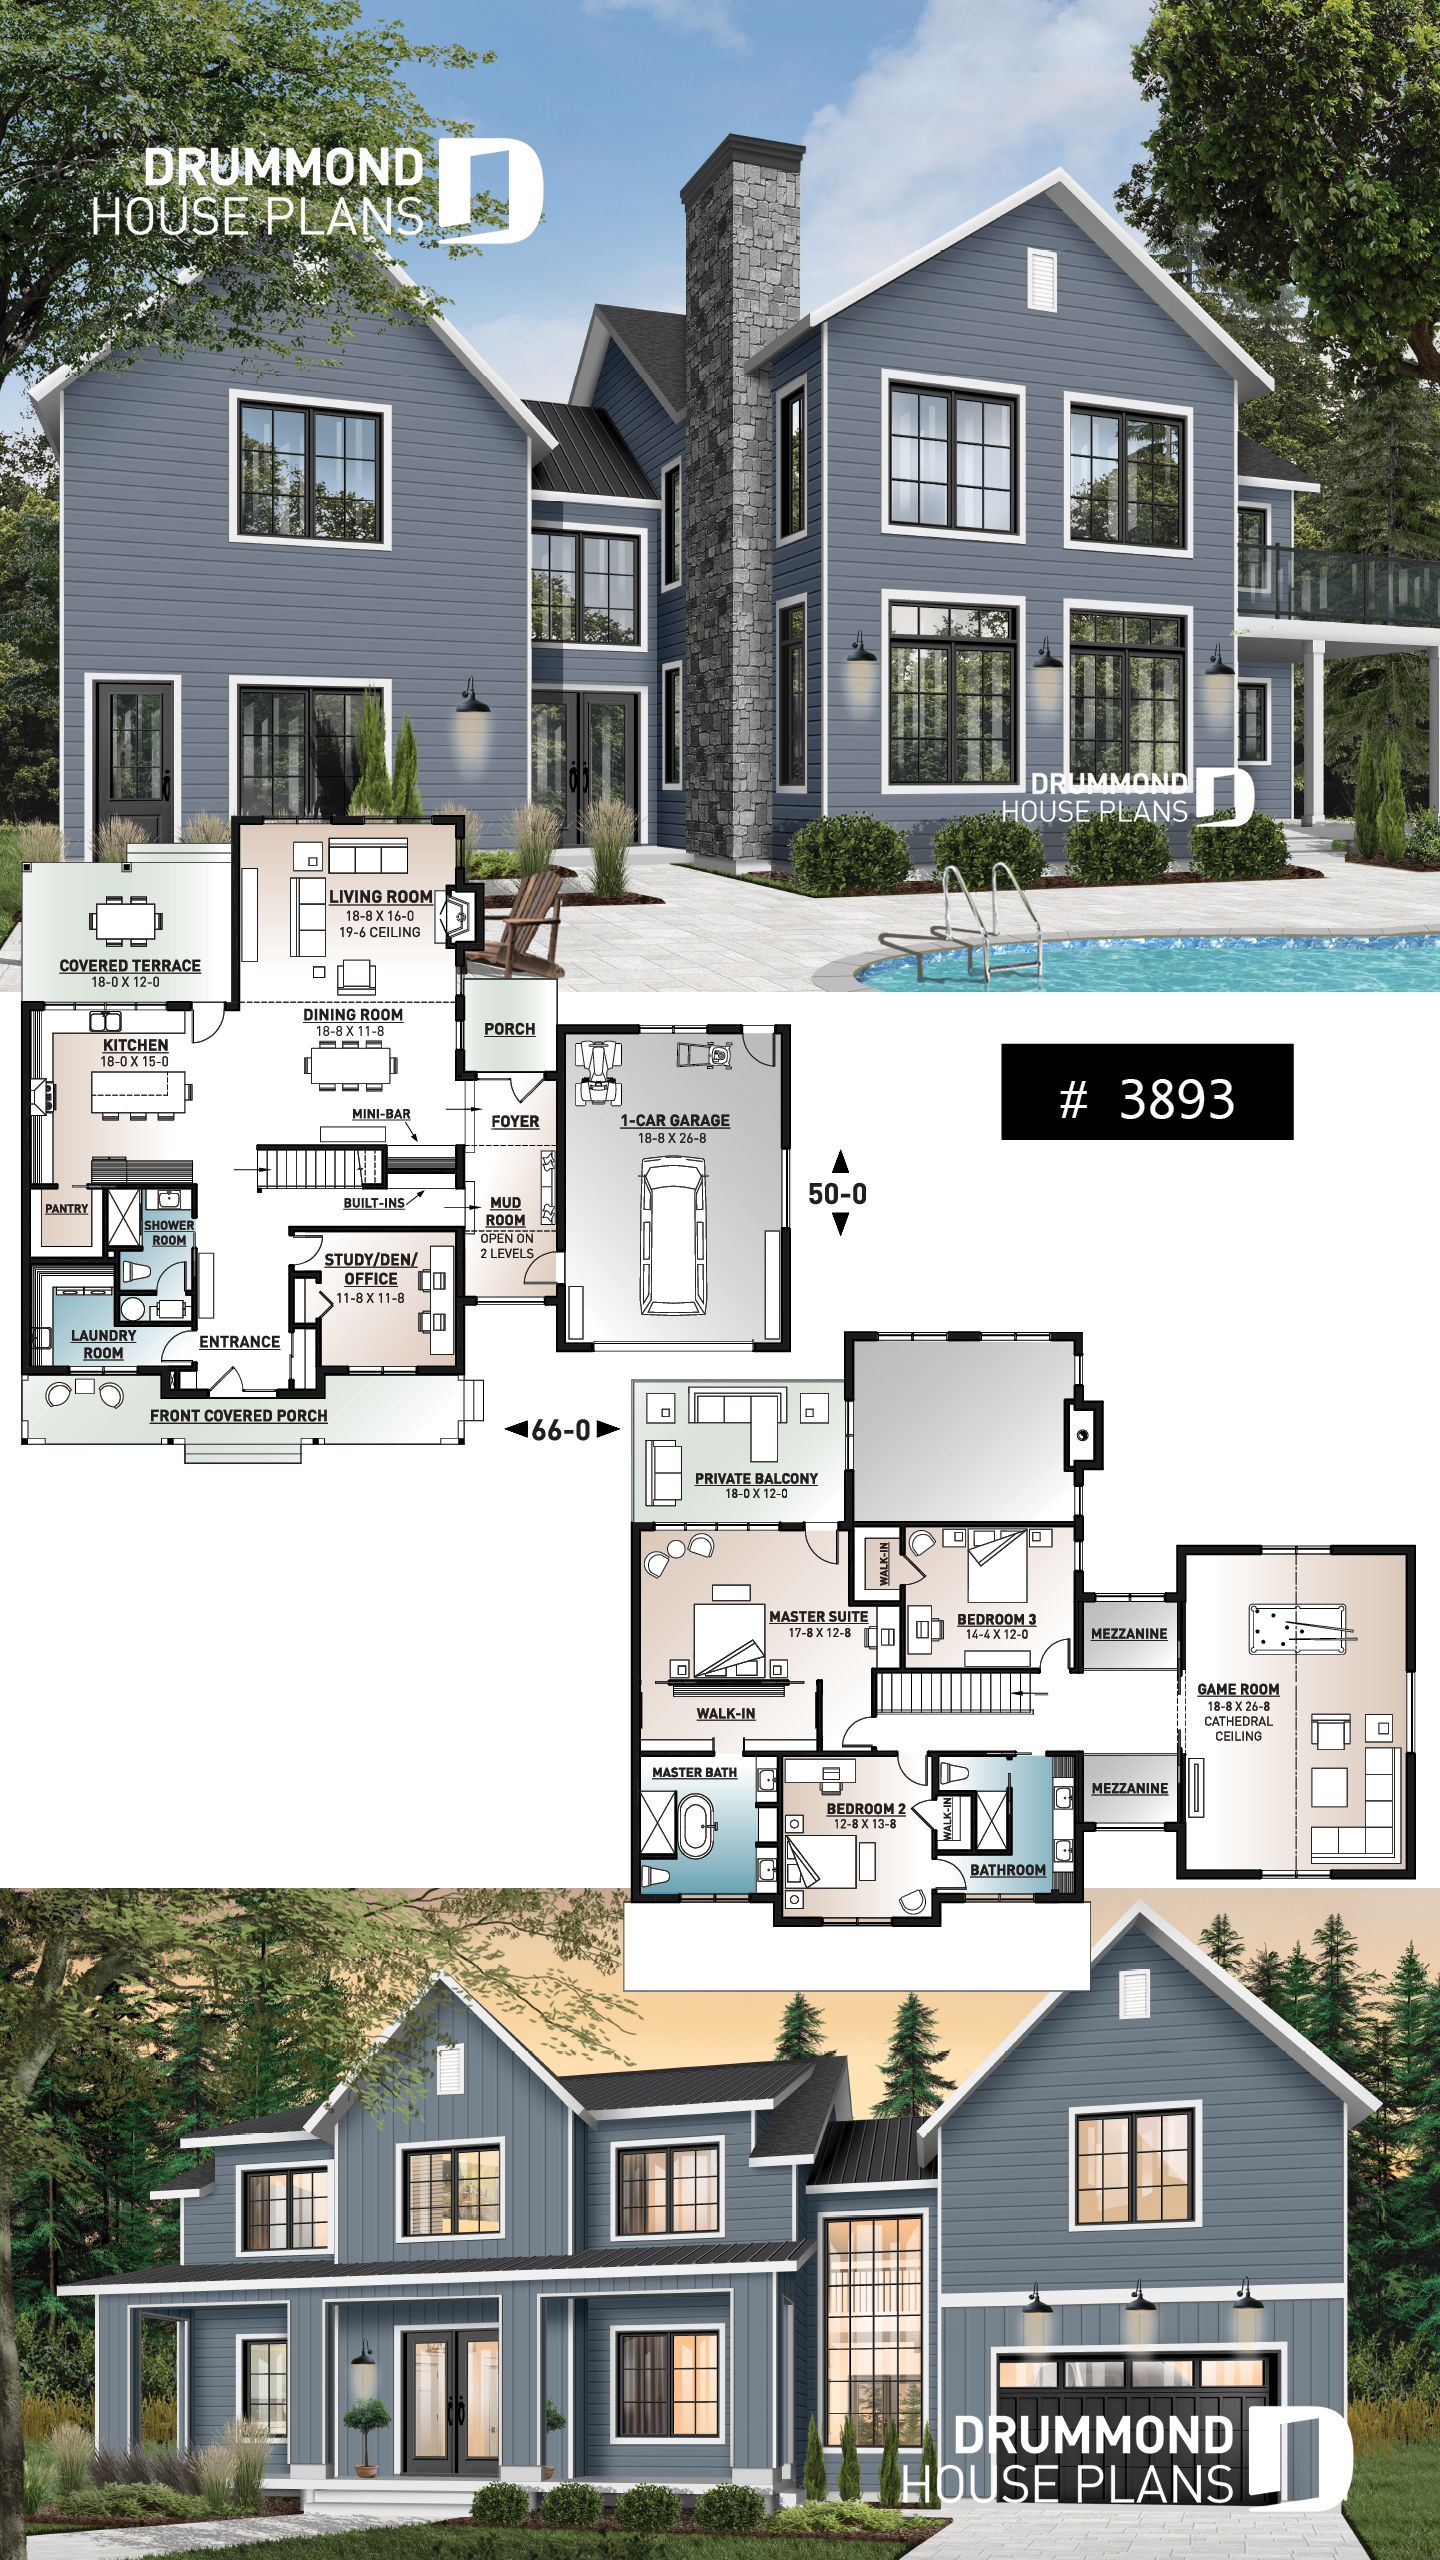 Discover The Plan 3893 Bridge Which Will Please You For Its 3 4 Bedrooms And For Its Farmhouse Styles Modern Farmhouse Plans Sims House Plans Sims 4 House Plans